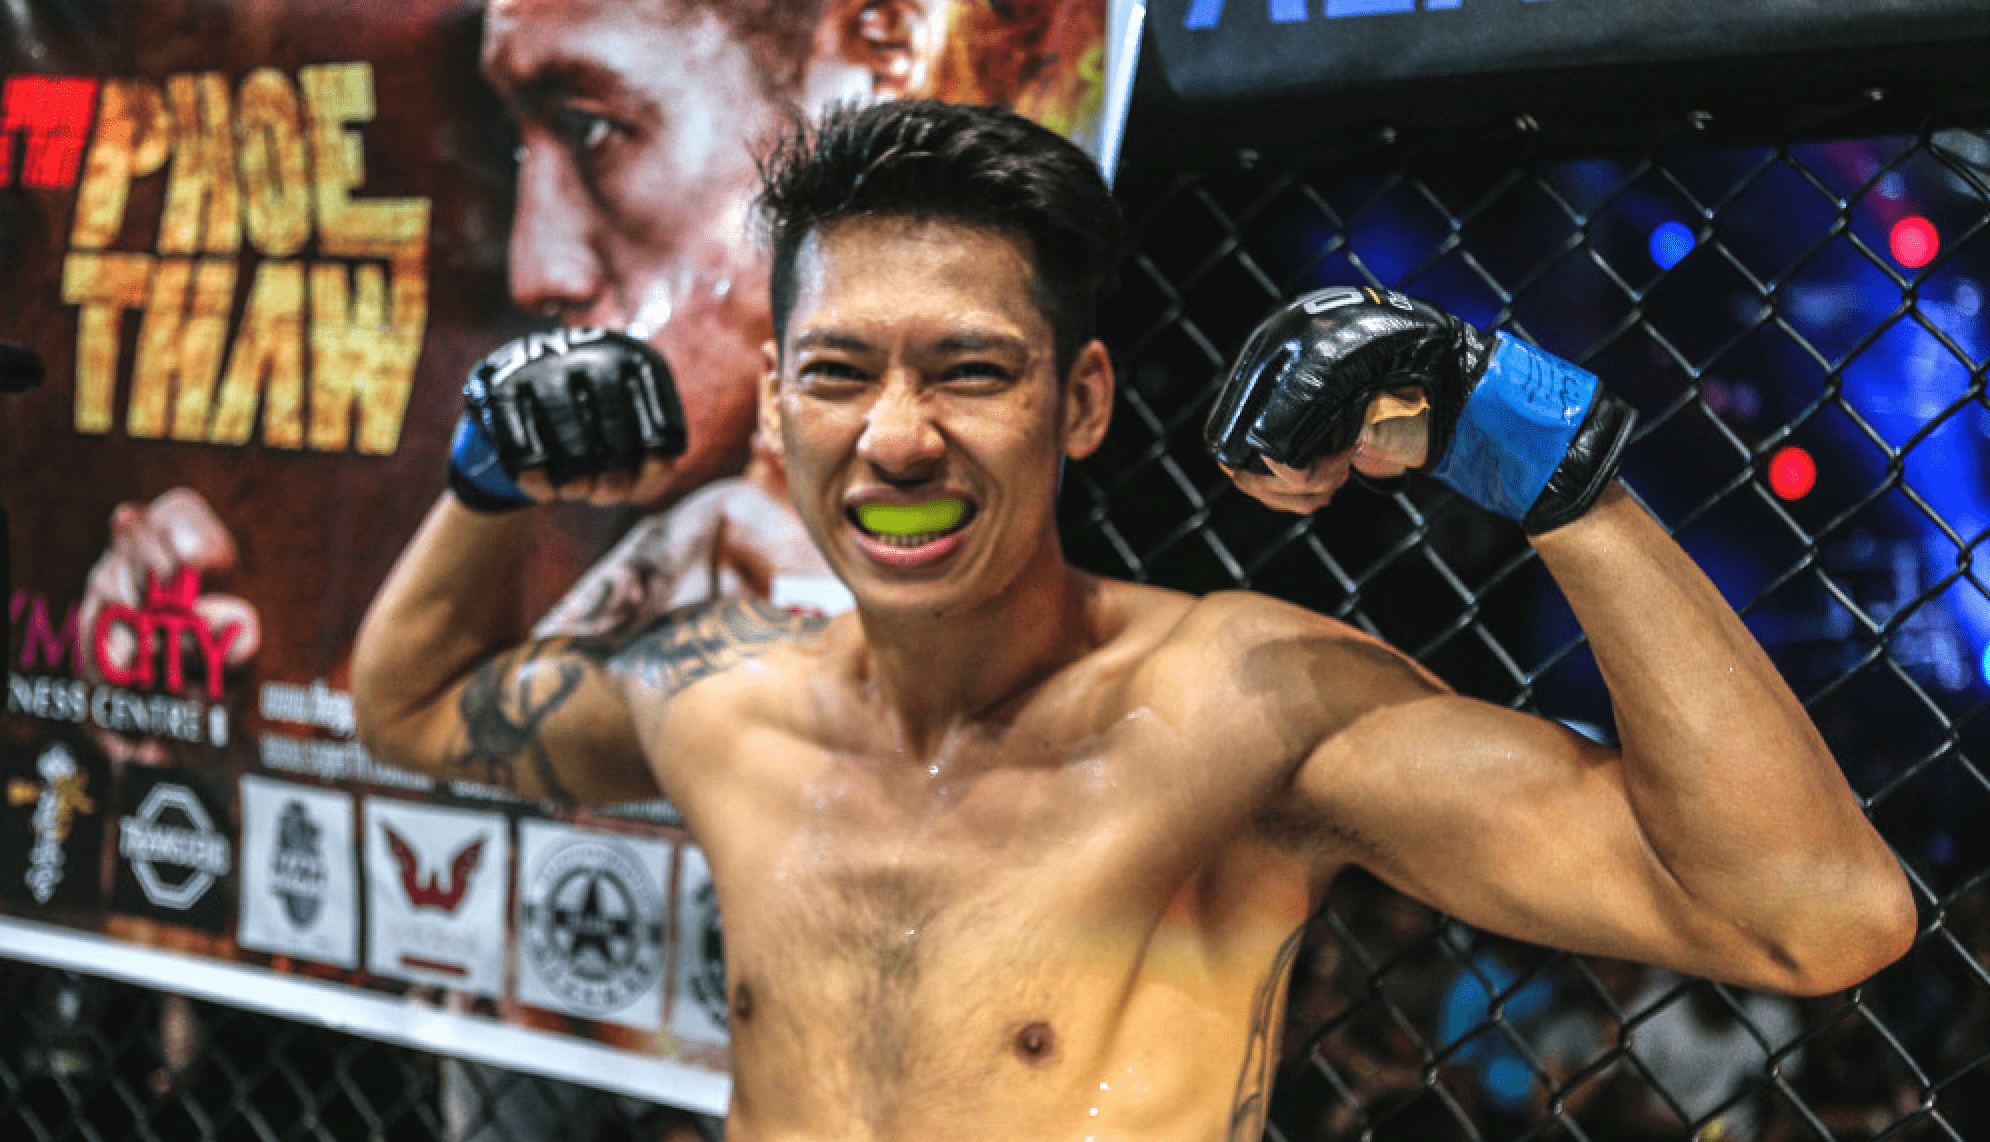 Phoe Thaw Will Be Looking To Continue His Streak Of Knockouts In Tokyo